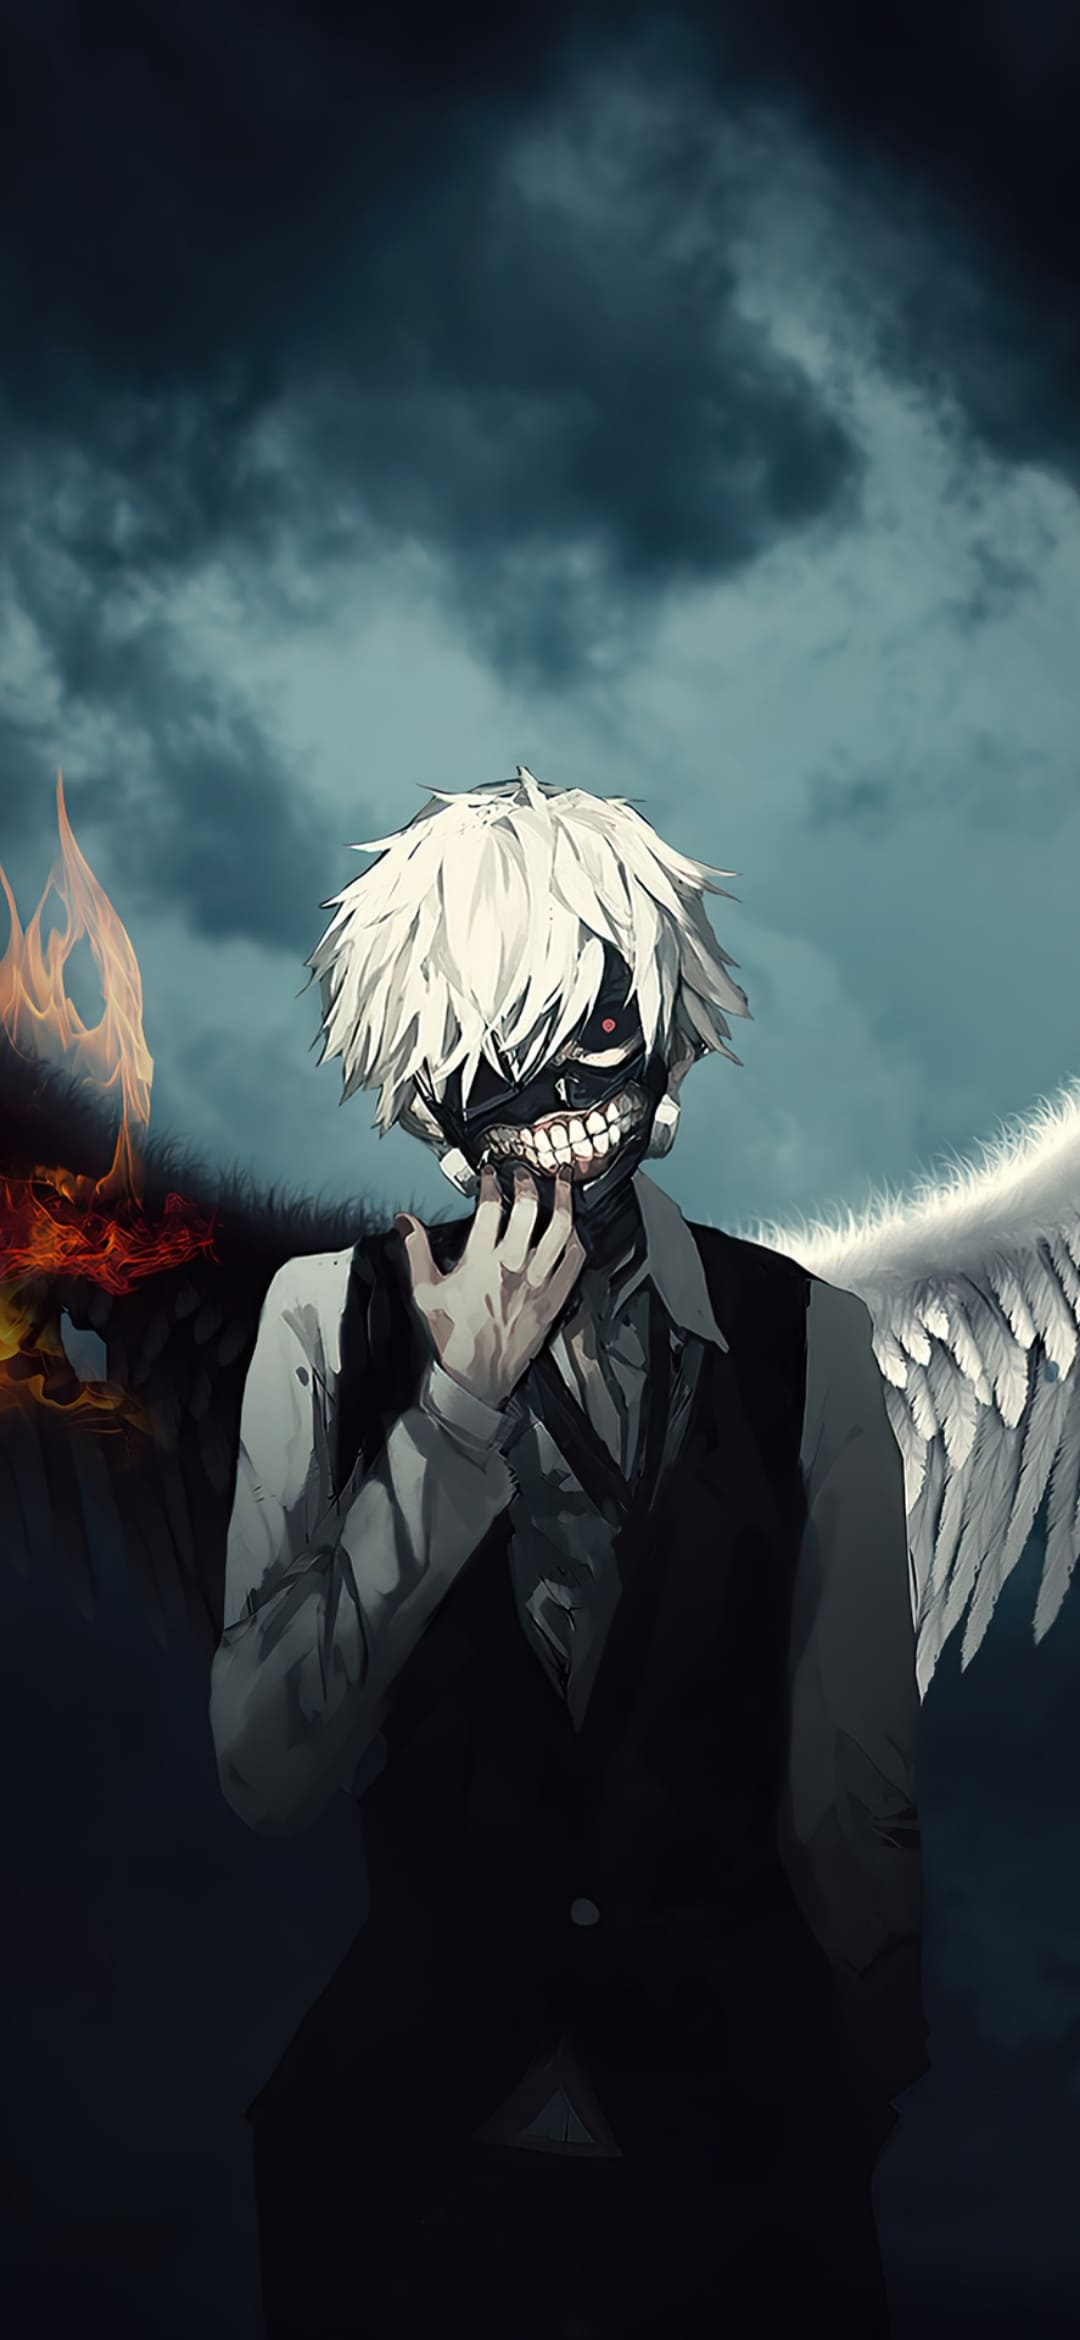 Tokyo Ghoul Wallpapers Top Best 65 Best Tokyo Ghoul Backgrounds Dowload